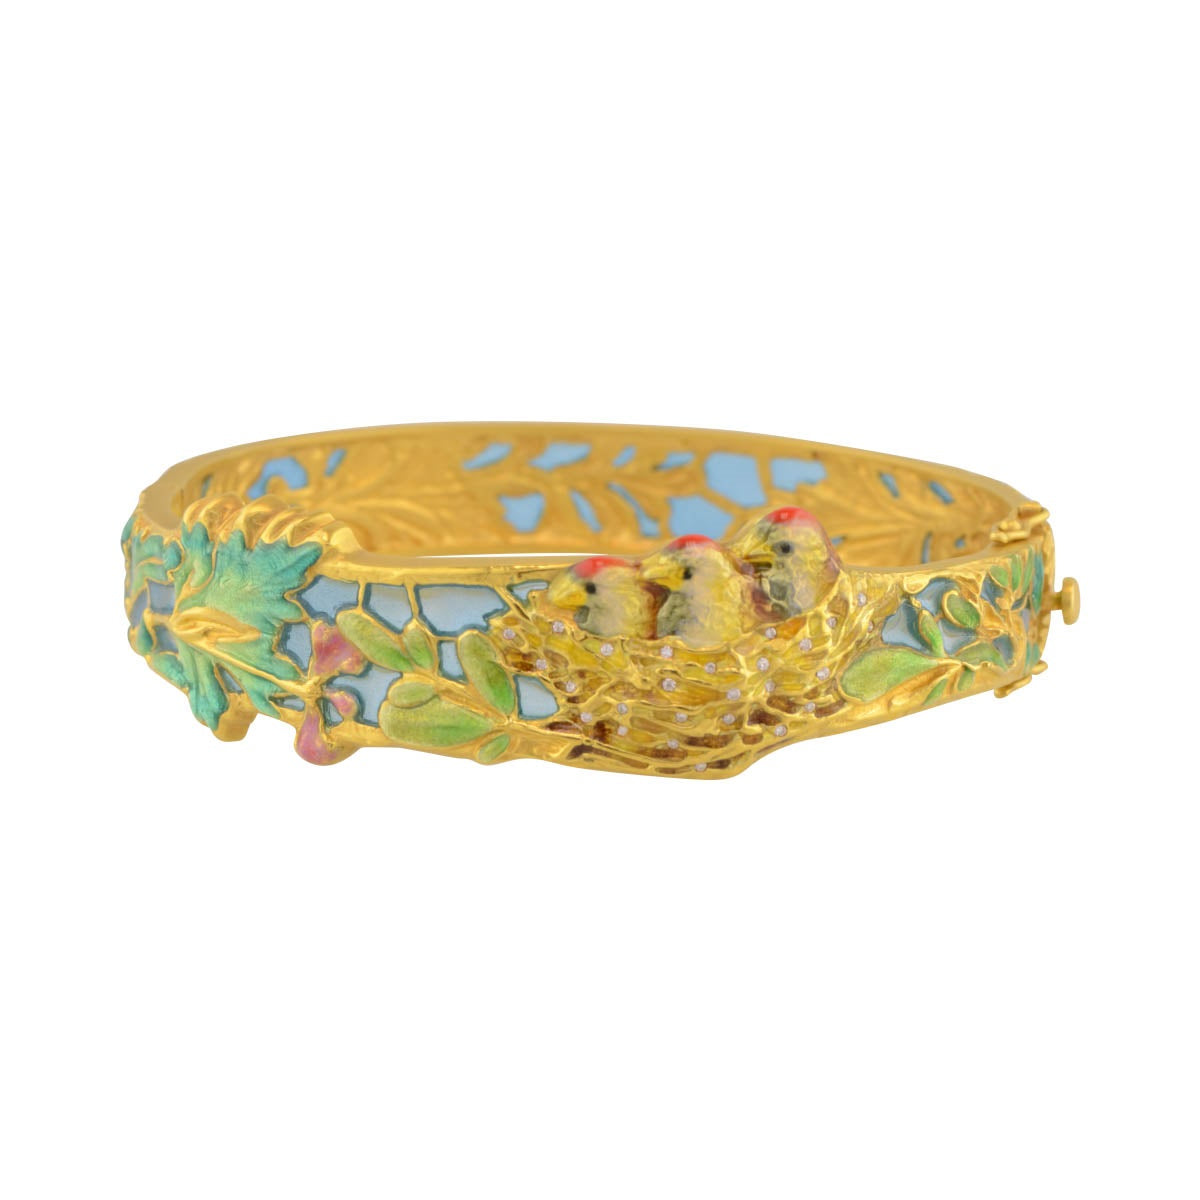 Masriera enamel bracelet in 18k yellow gold.